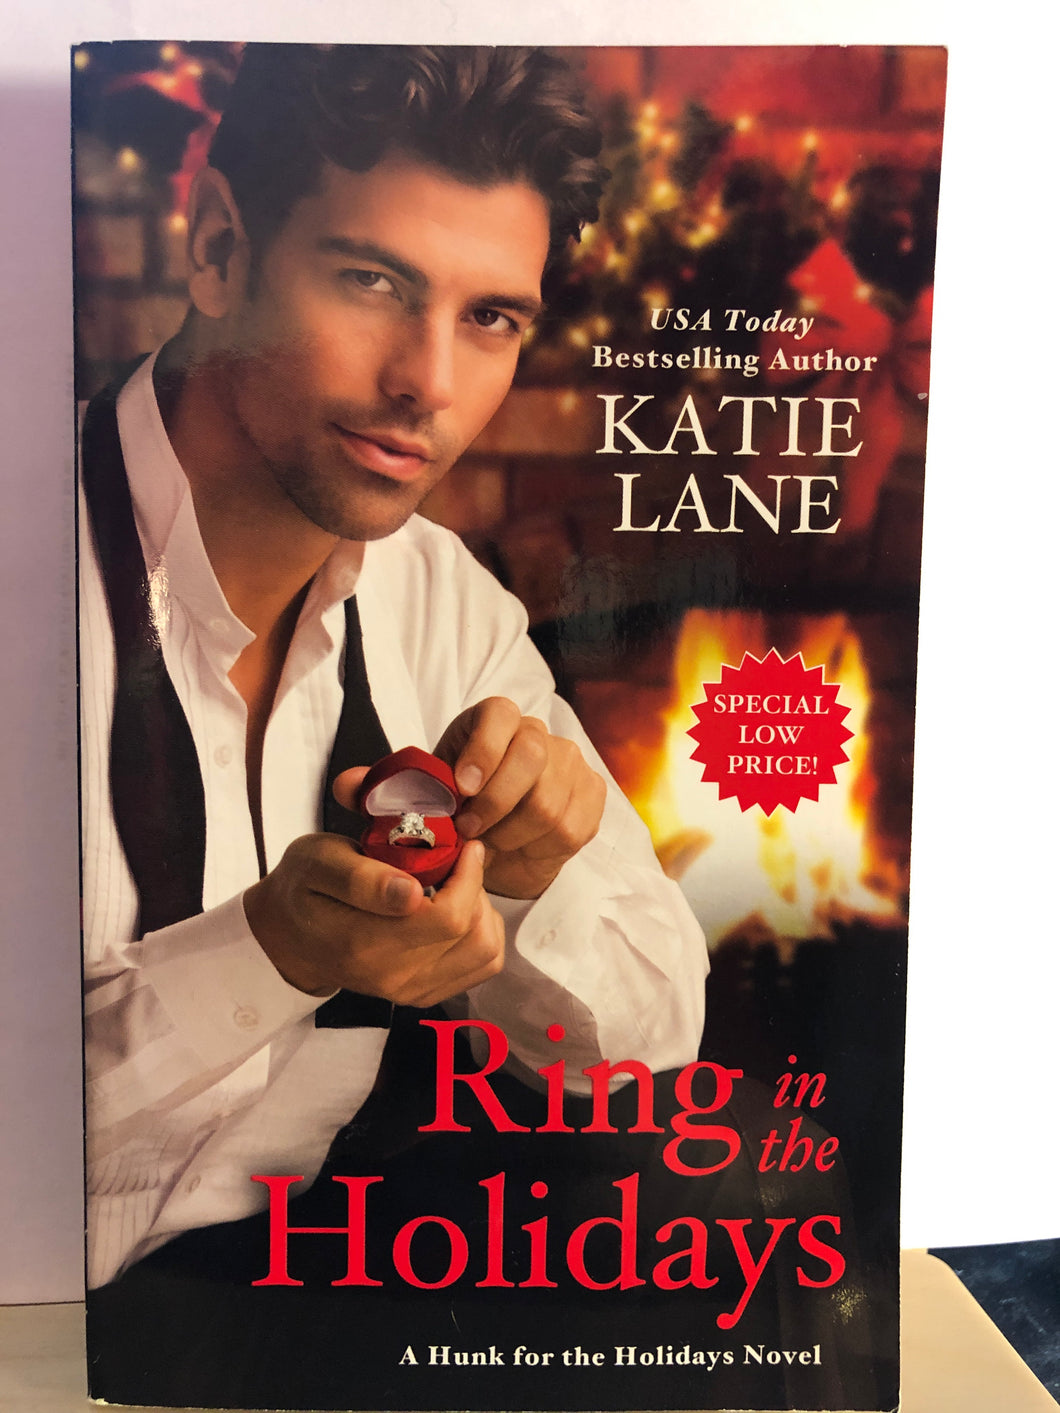 Ring in the Holidays   by Katie Lane   (Hunk for the Holidays #2)